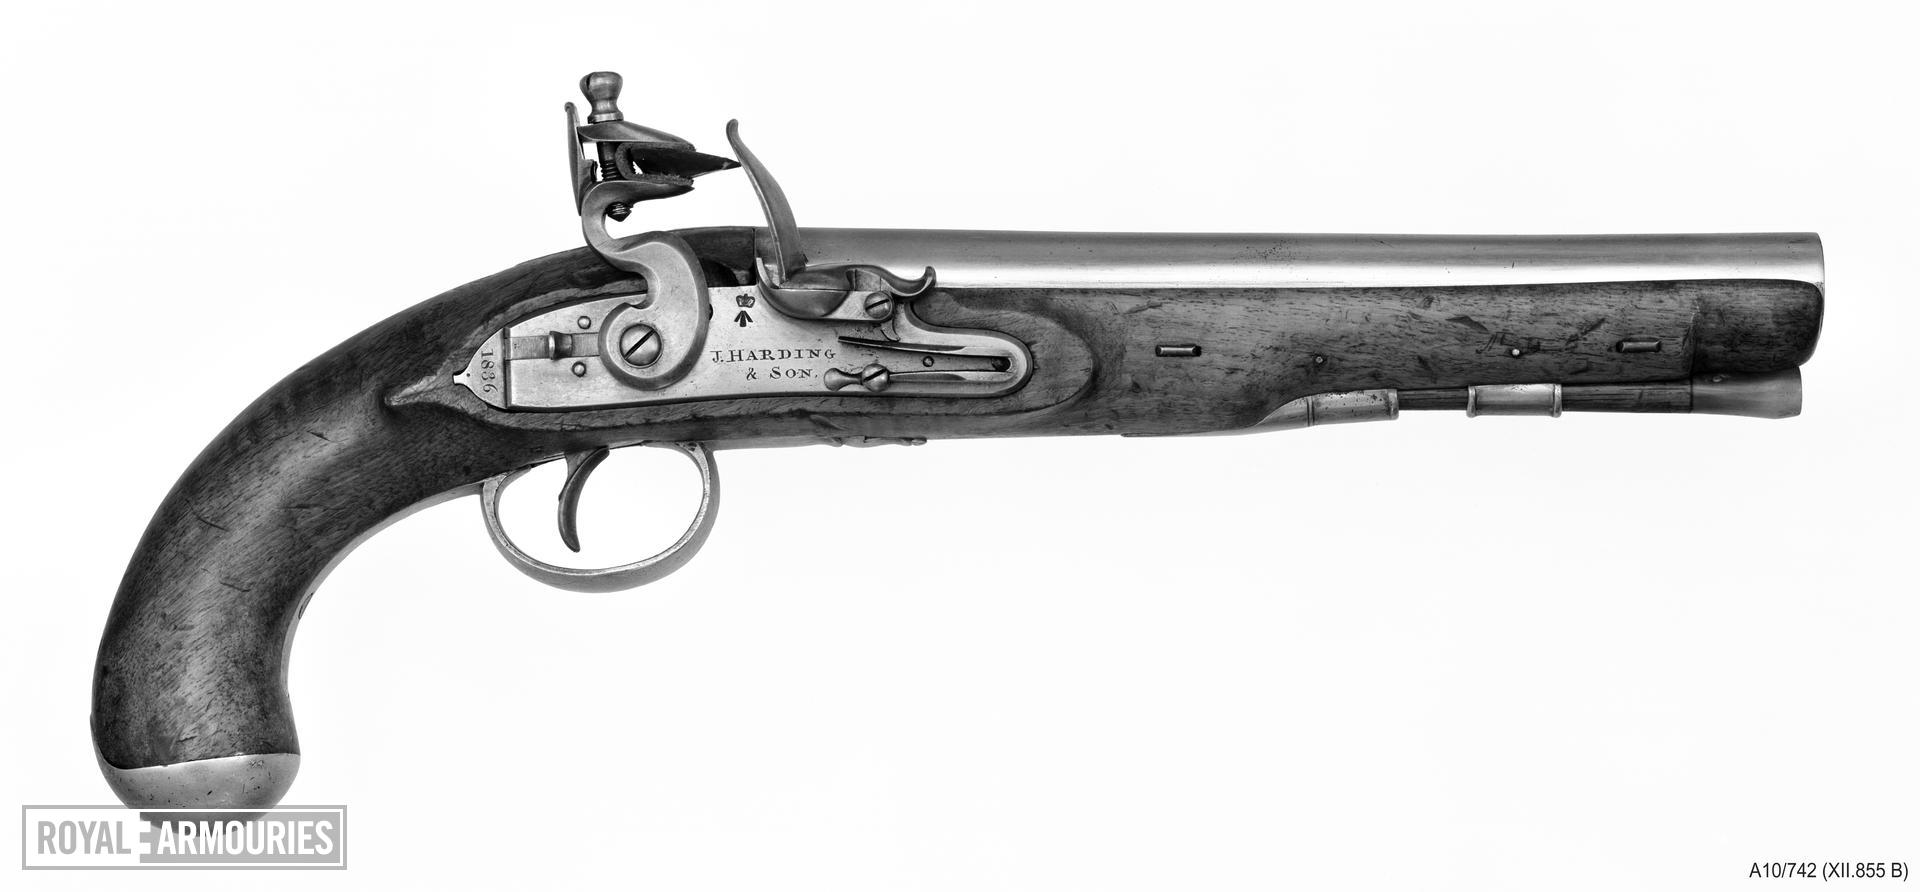 Flintlock pistol By J. Harding & Son For His Majesty's Mail Coaches